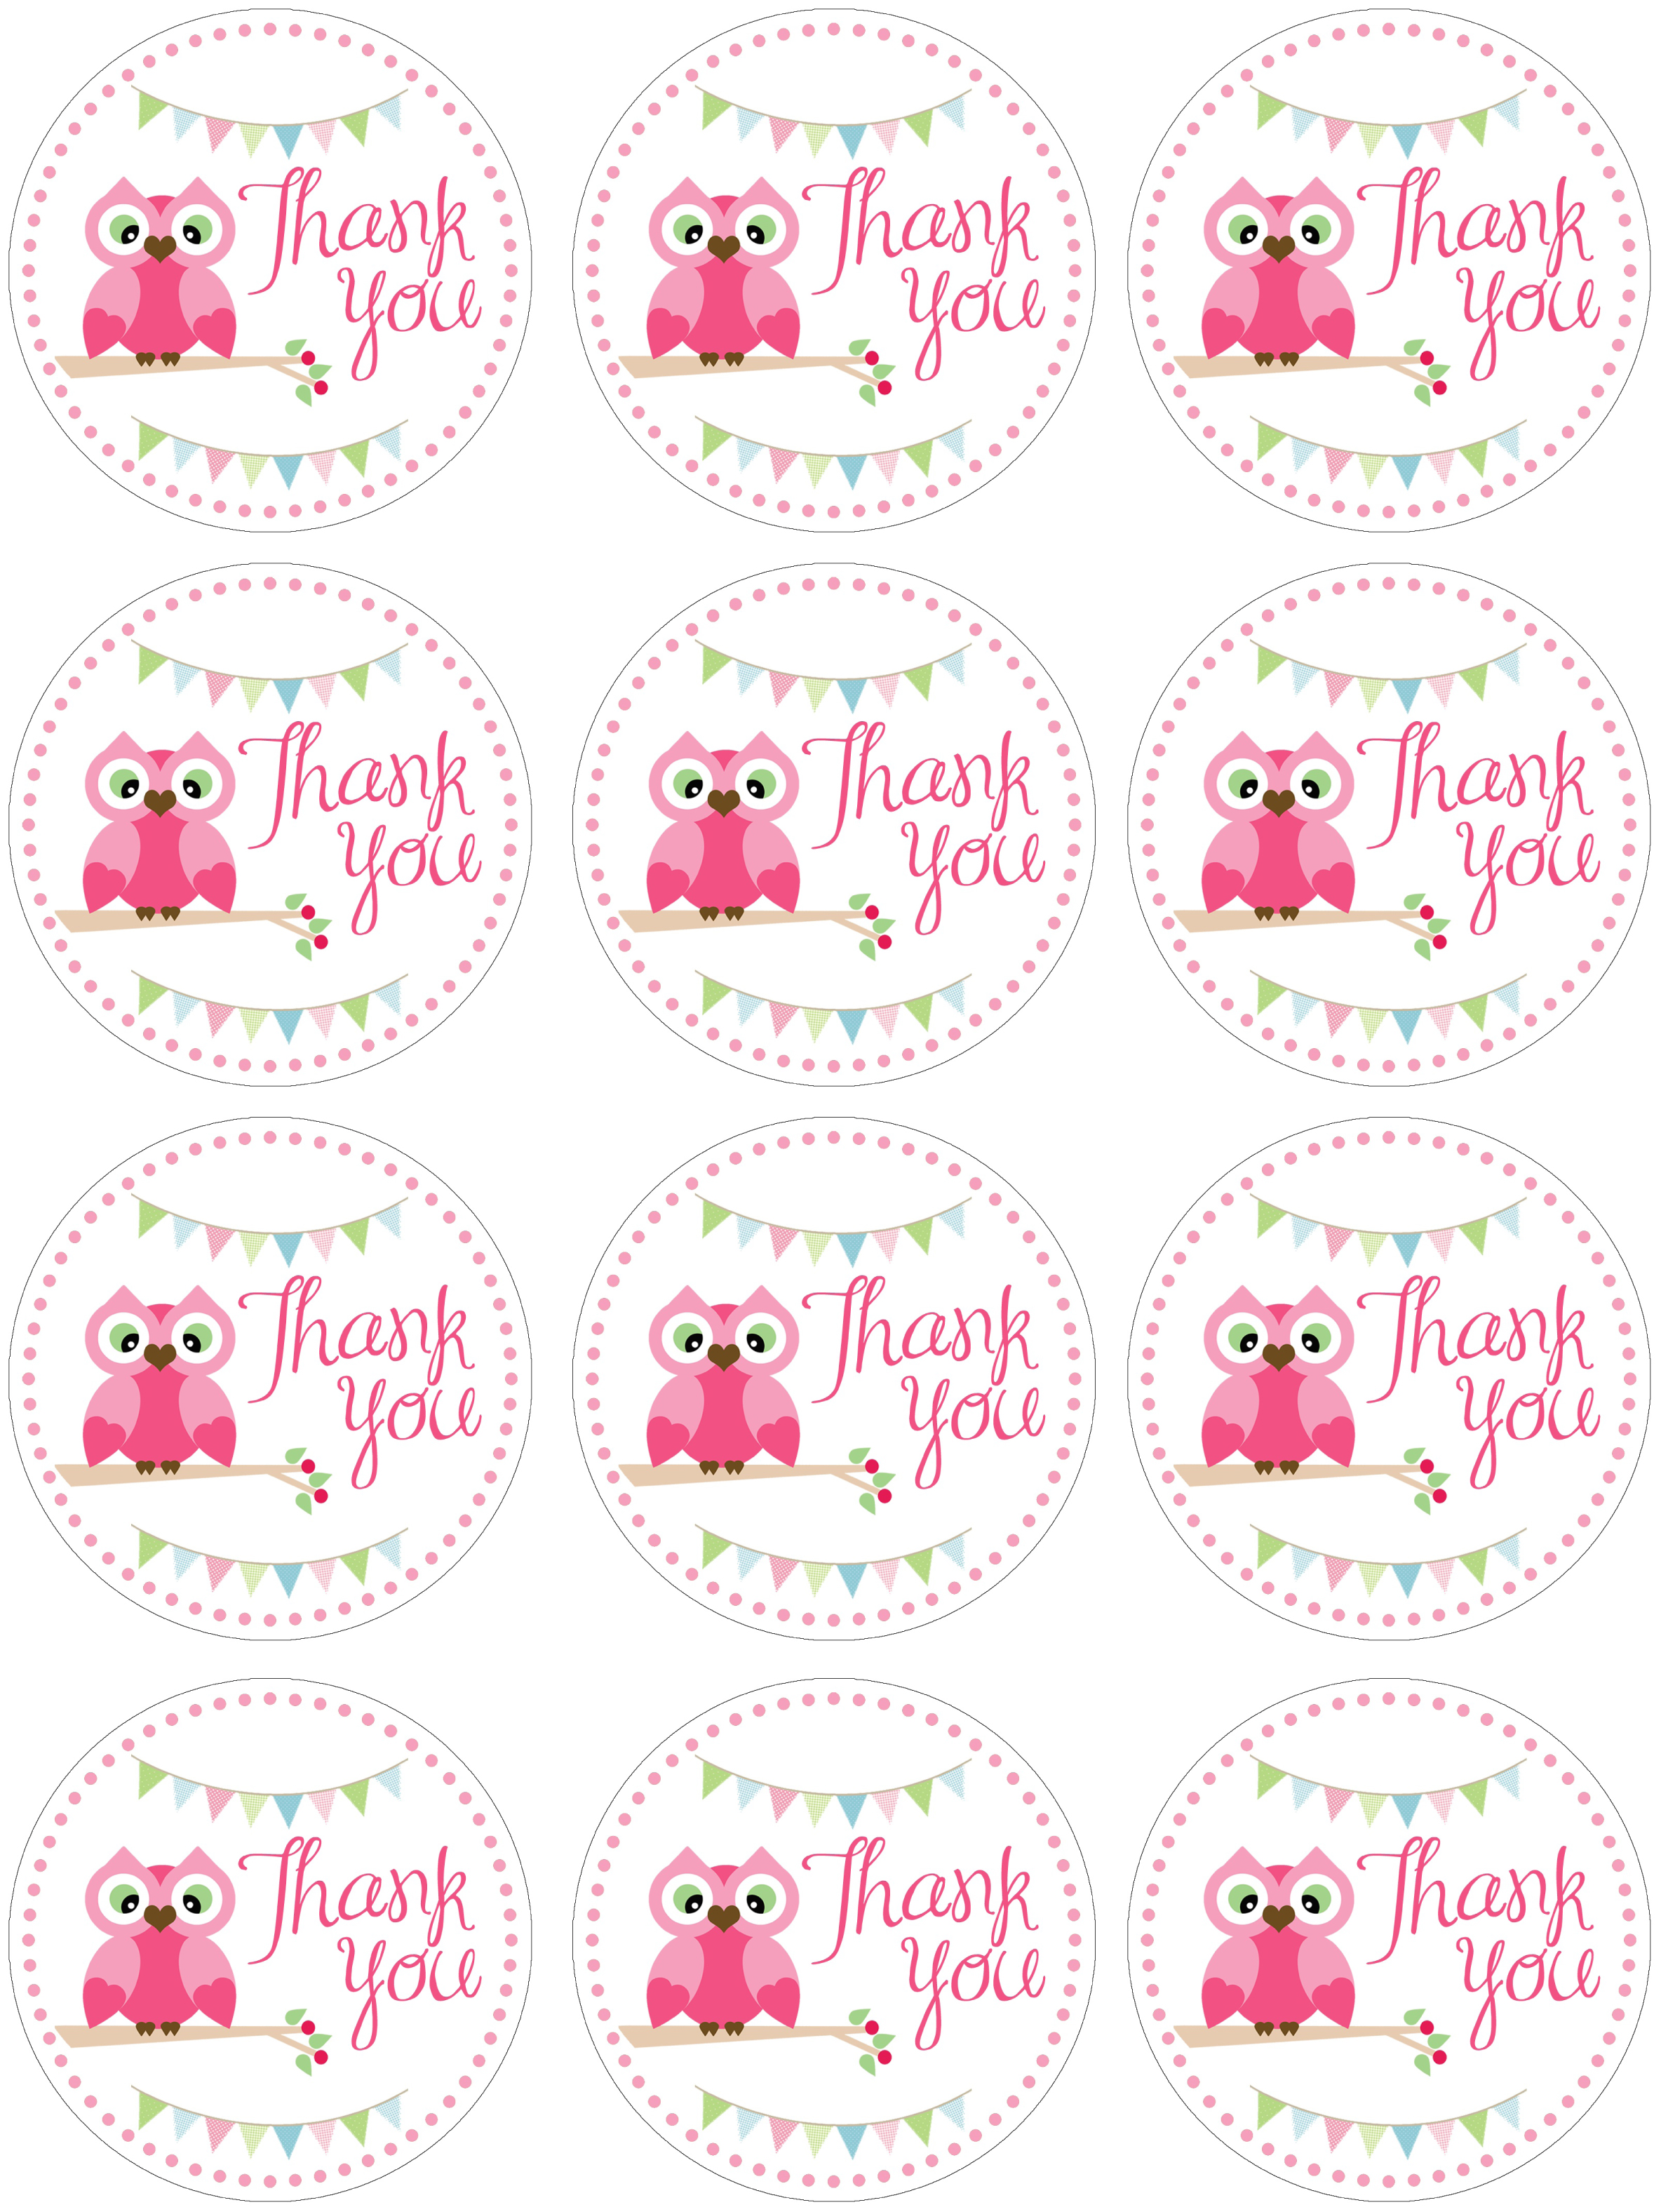 4 Images of Free Printable Owl Favor Tags